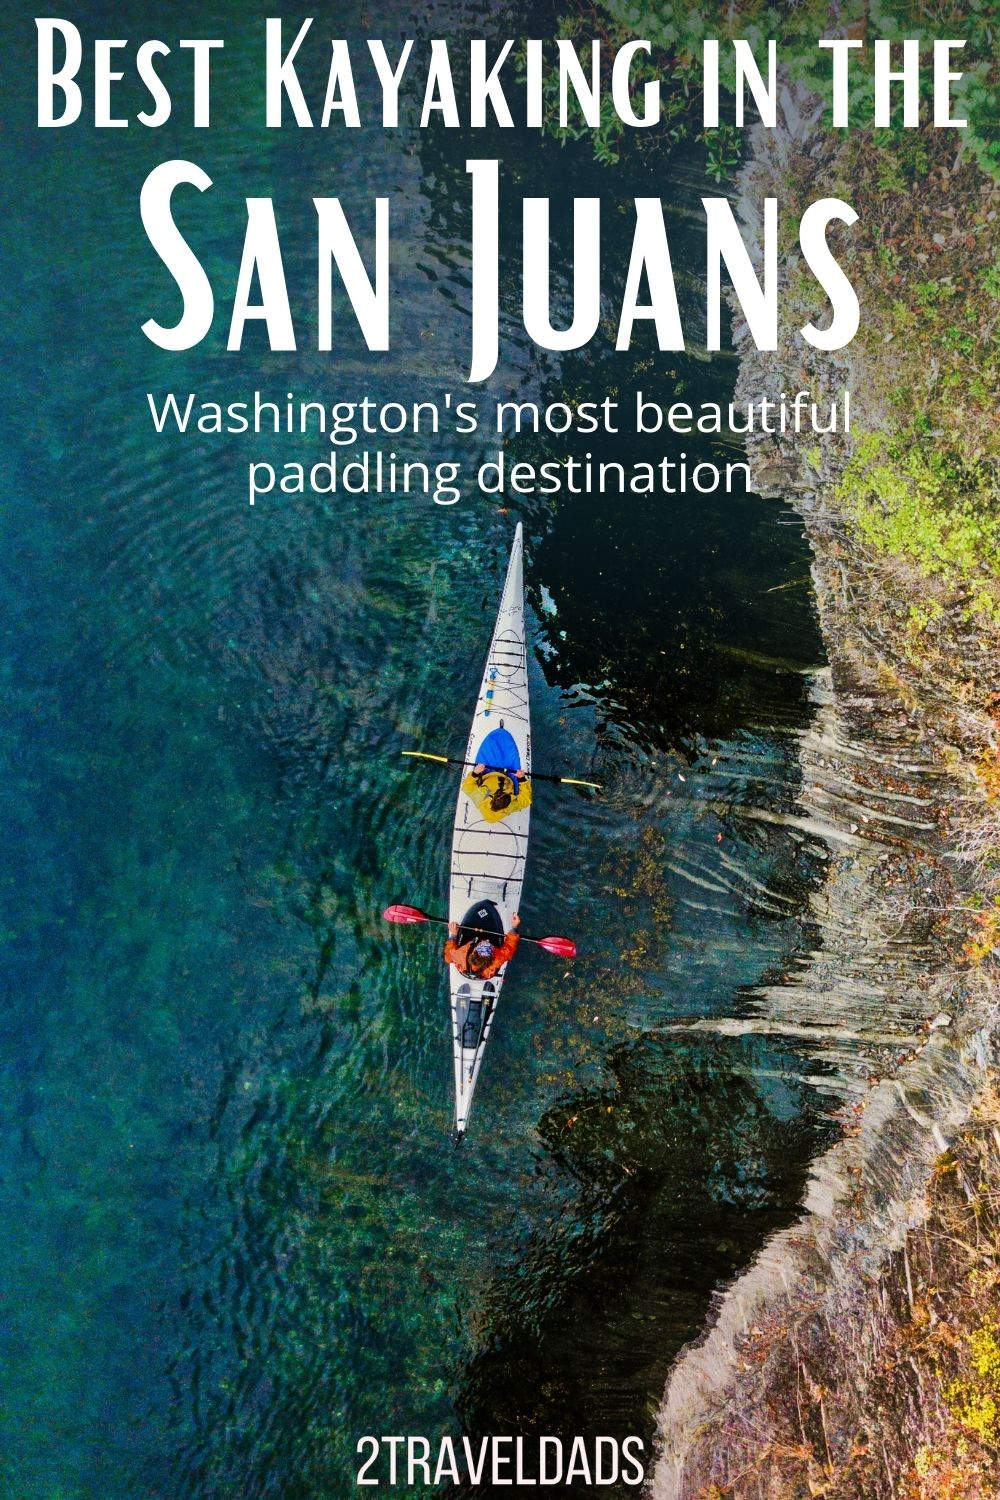 Best kayaking in the San Juan Islands of Washington. Kayak tours and best places to launch in the San Juans, including kayaking with orcas and bioluminescence near Seattle.